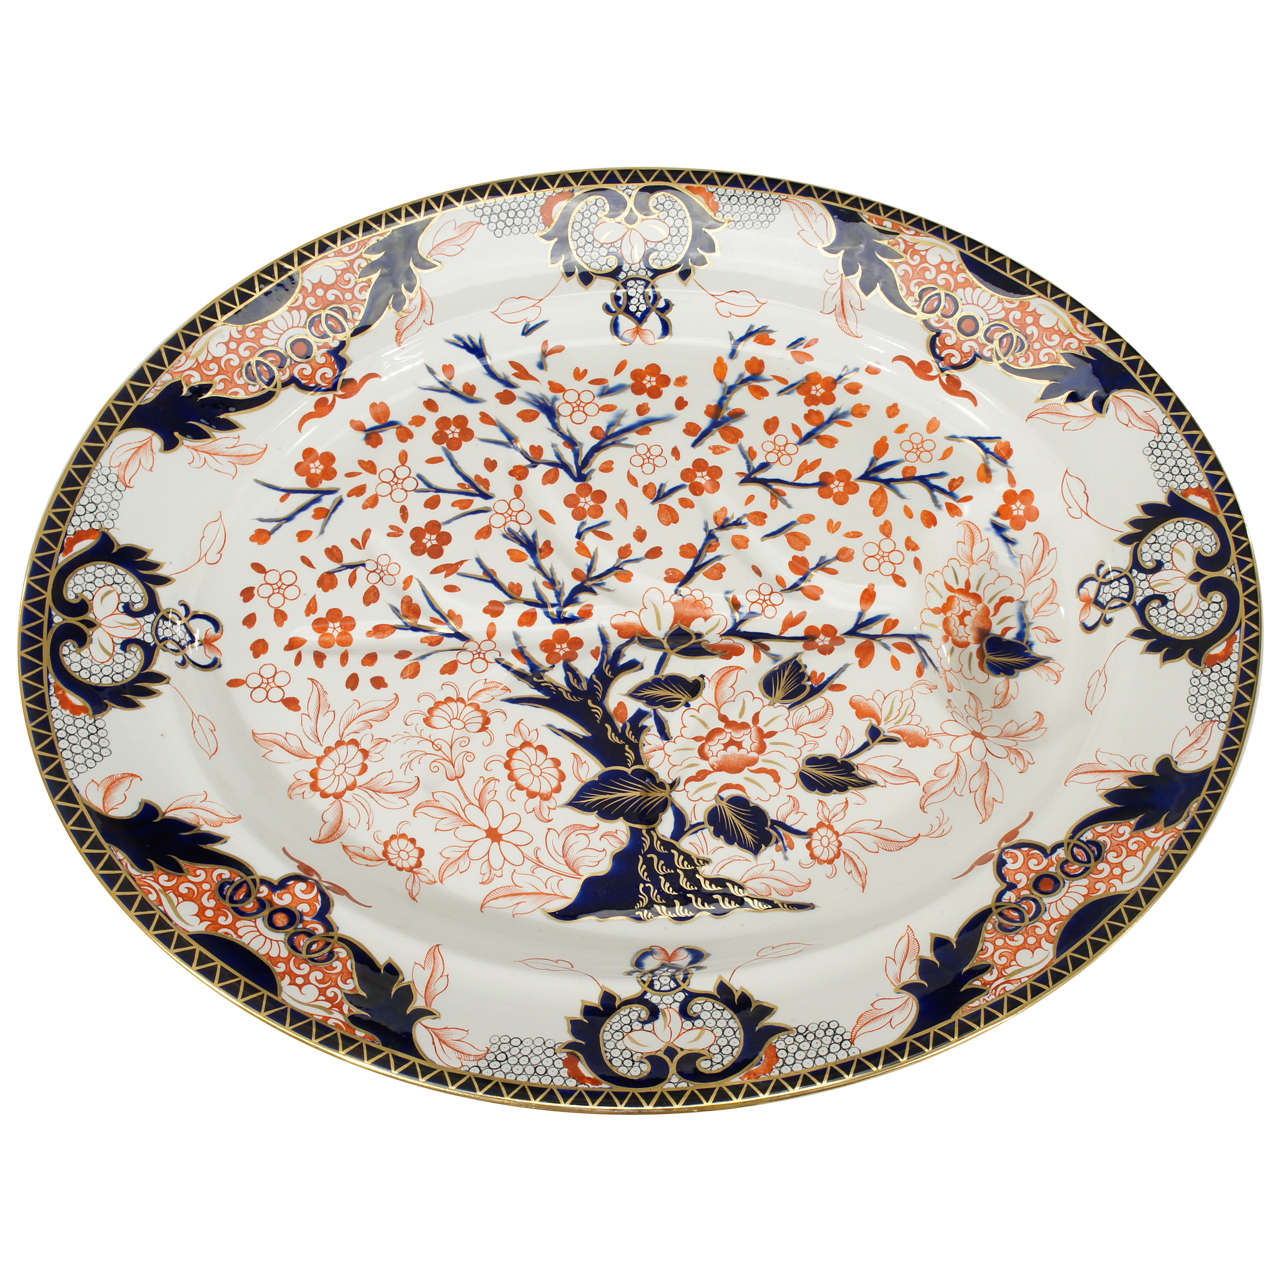 19th C. Derby Imari Decorated Massive Well And Tree Platter